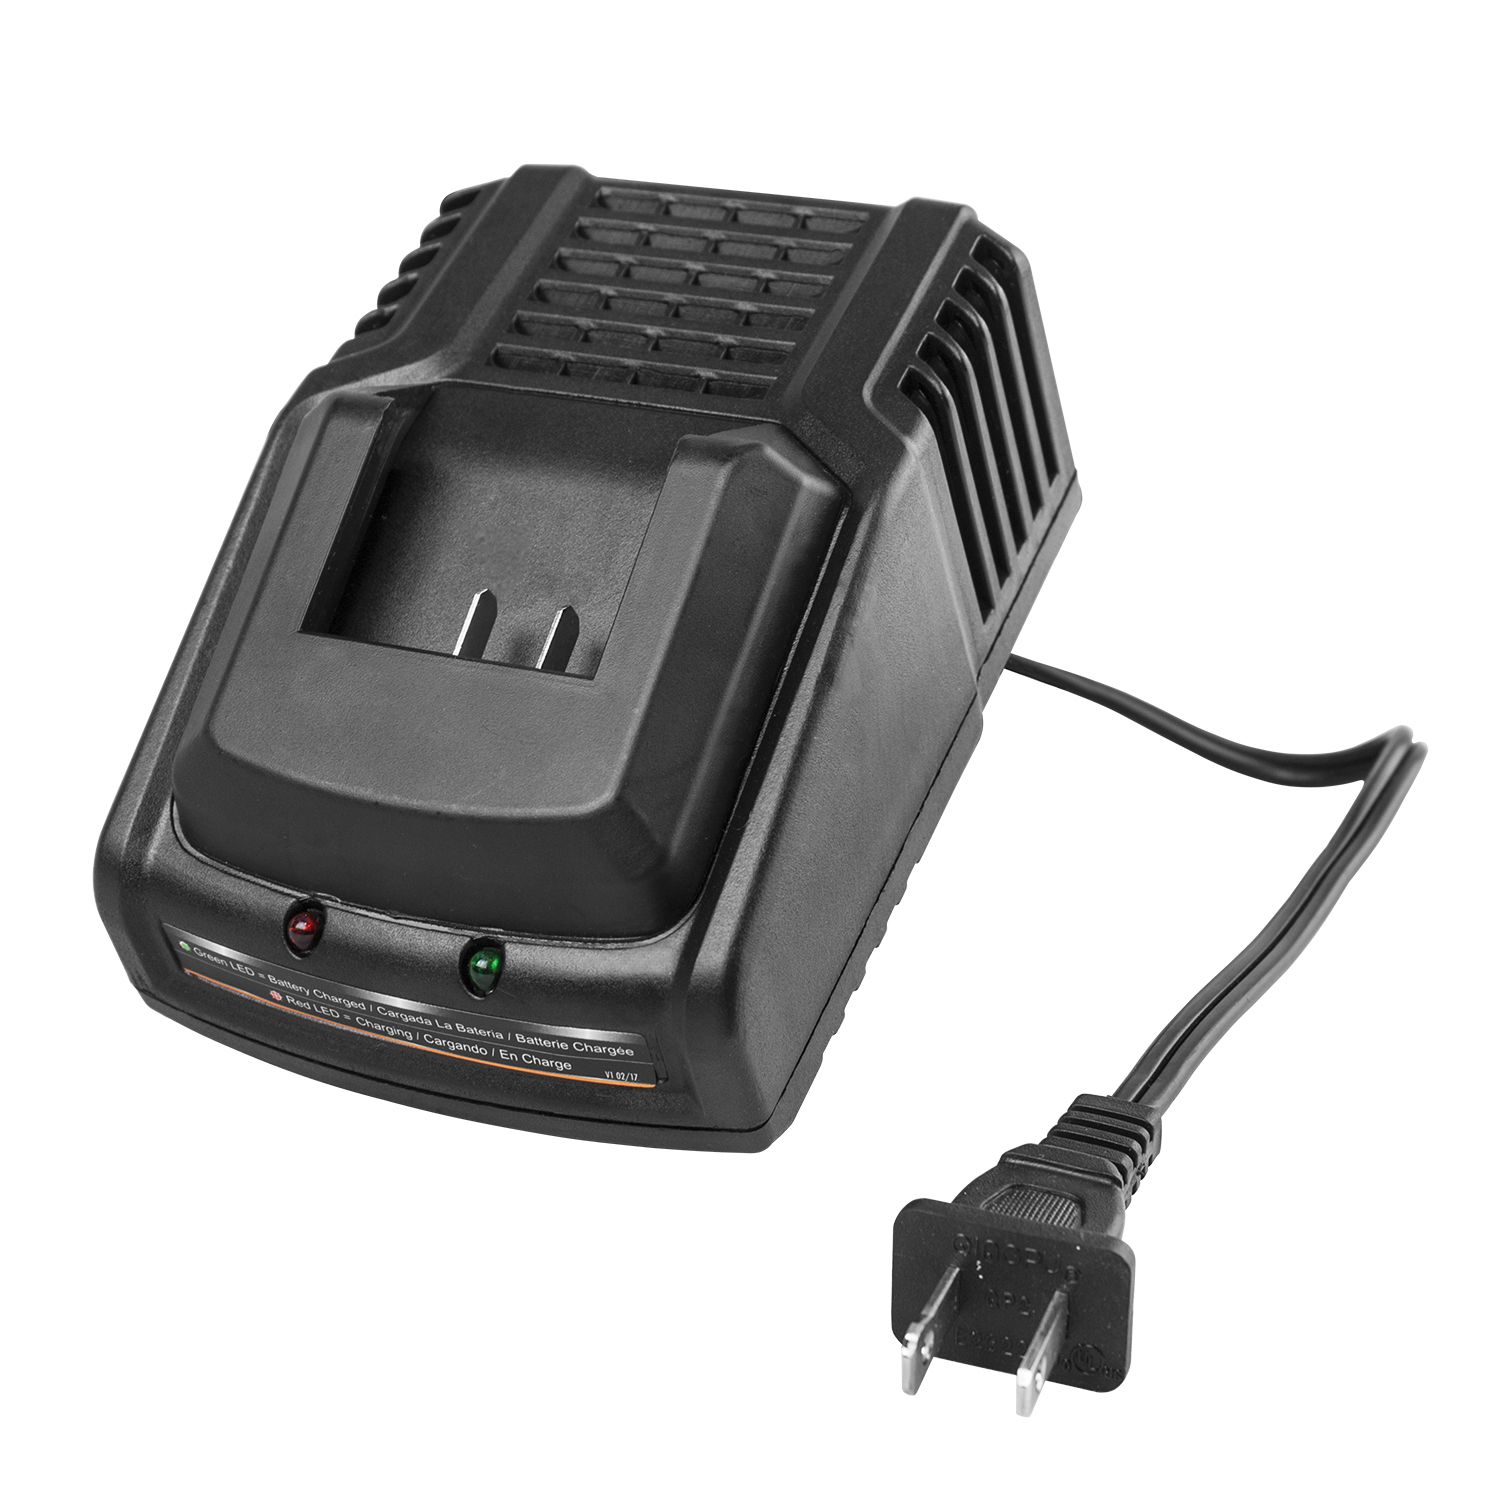 18 Volt LithiumIon Quick Battery Charger     Freeman Tools